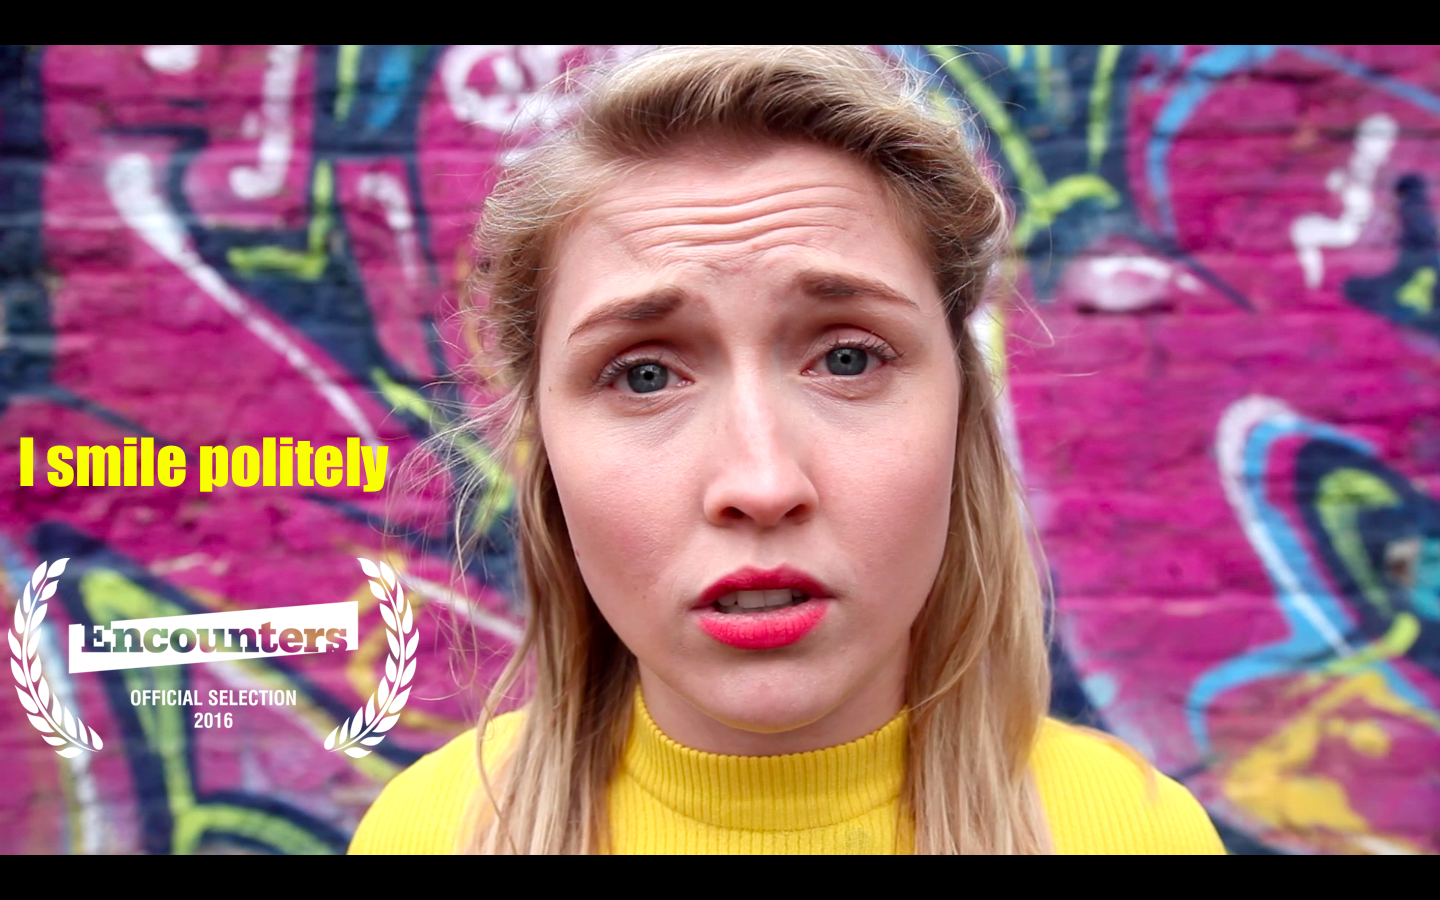 I Smile Politely - 5 minute film about street harassment starring April Hughes. Selected for the Encounters Short Film & Animation Festival 2016